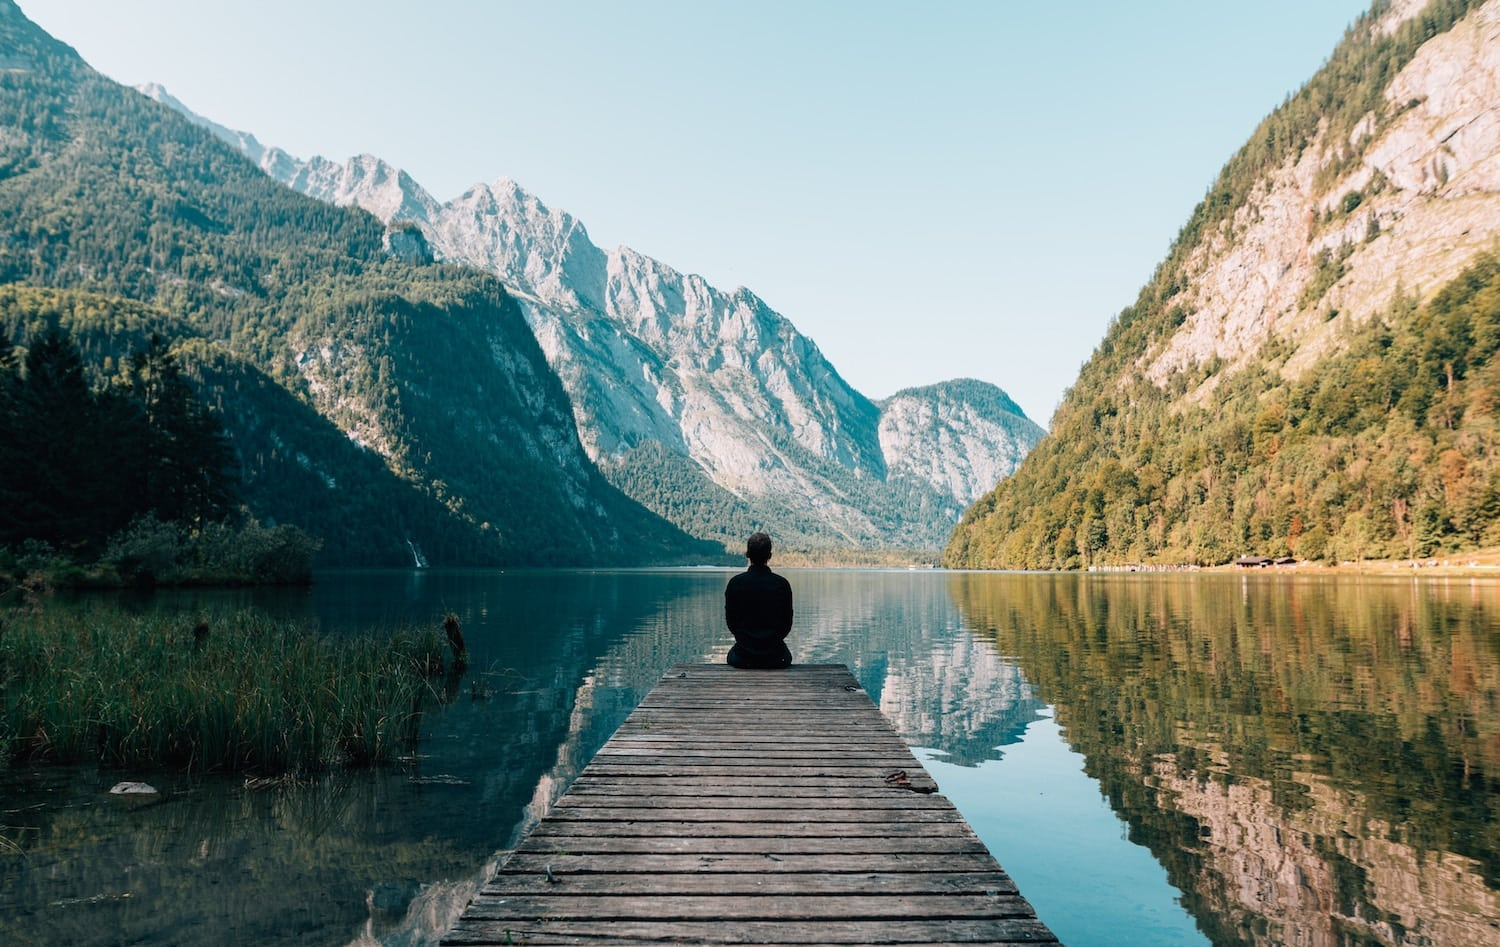 wellness trends in 2019 to watch